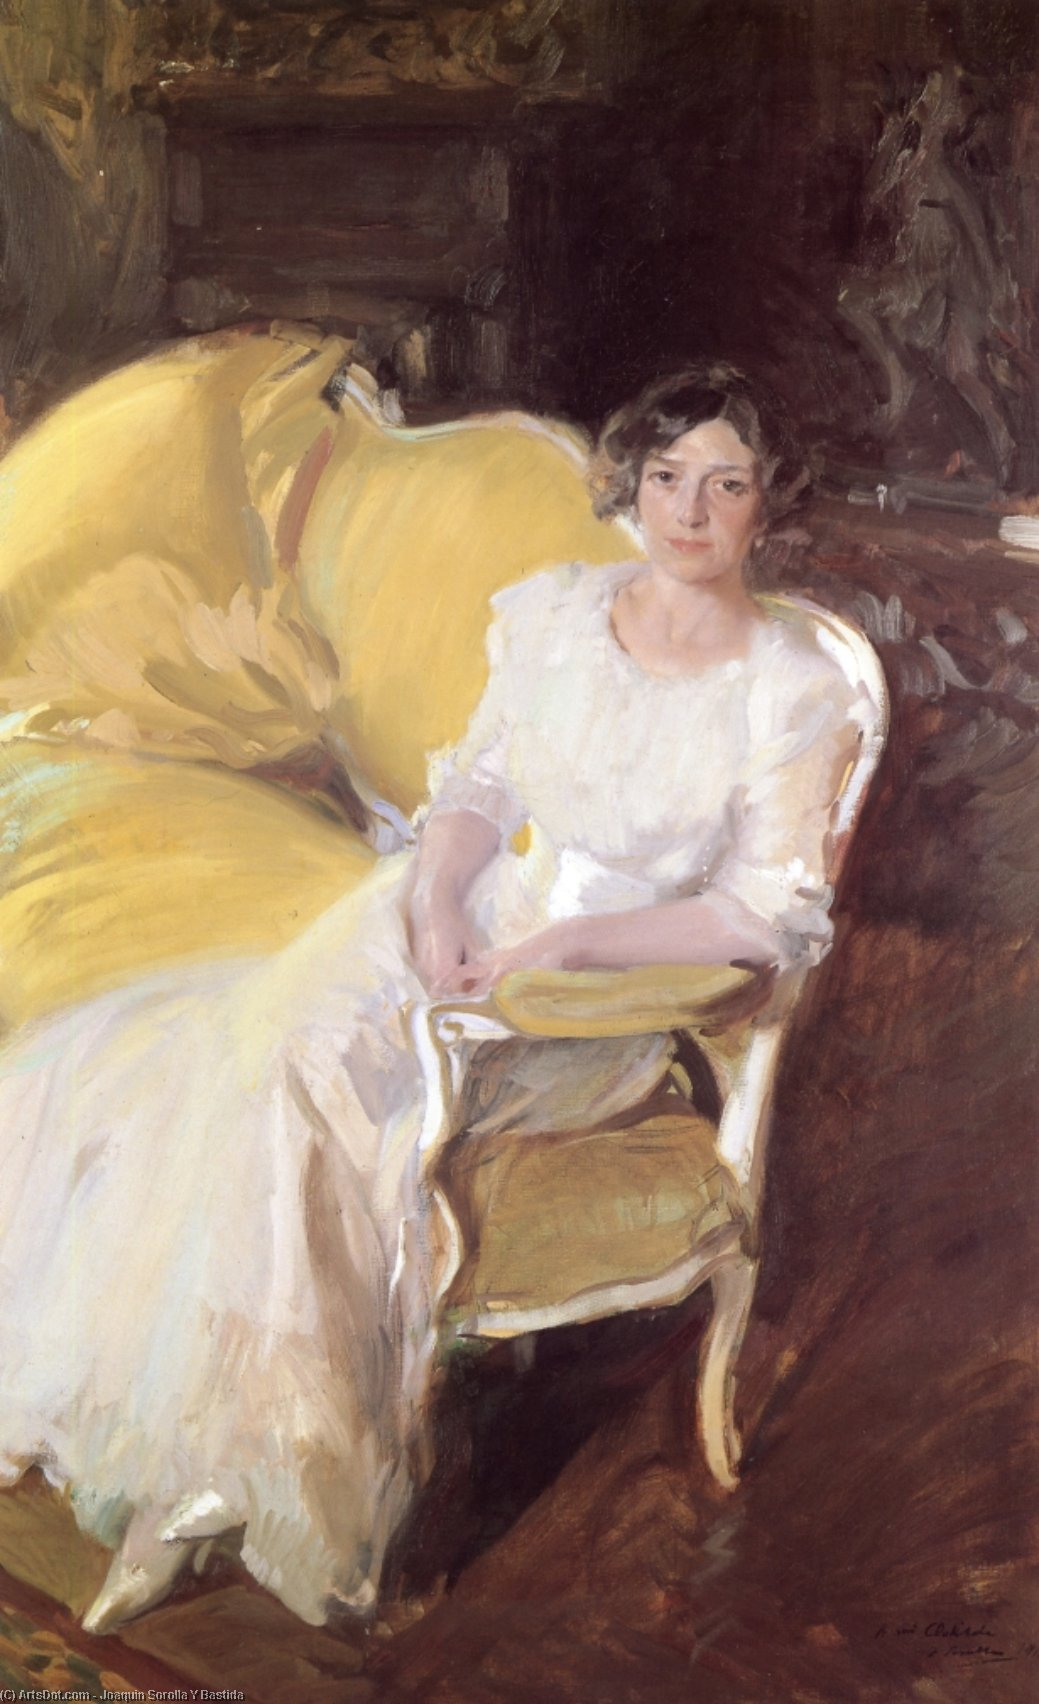 Clotilde Sitting on the Sofa, Oil On Canvas by Joaquin Sorolla Y Bastida (1863-1923, Spain)